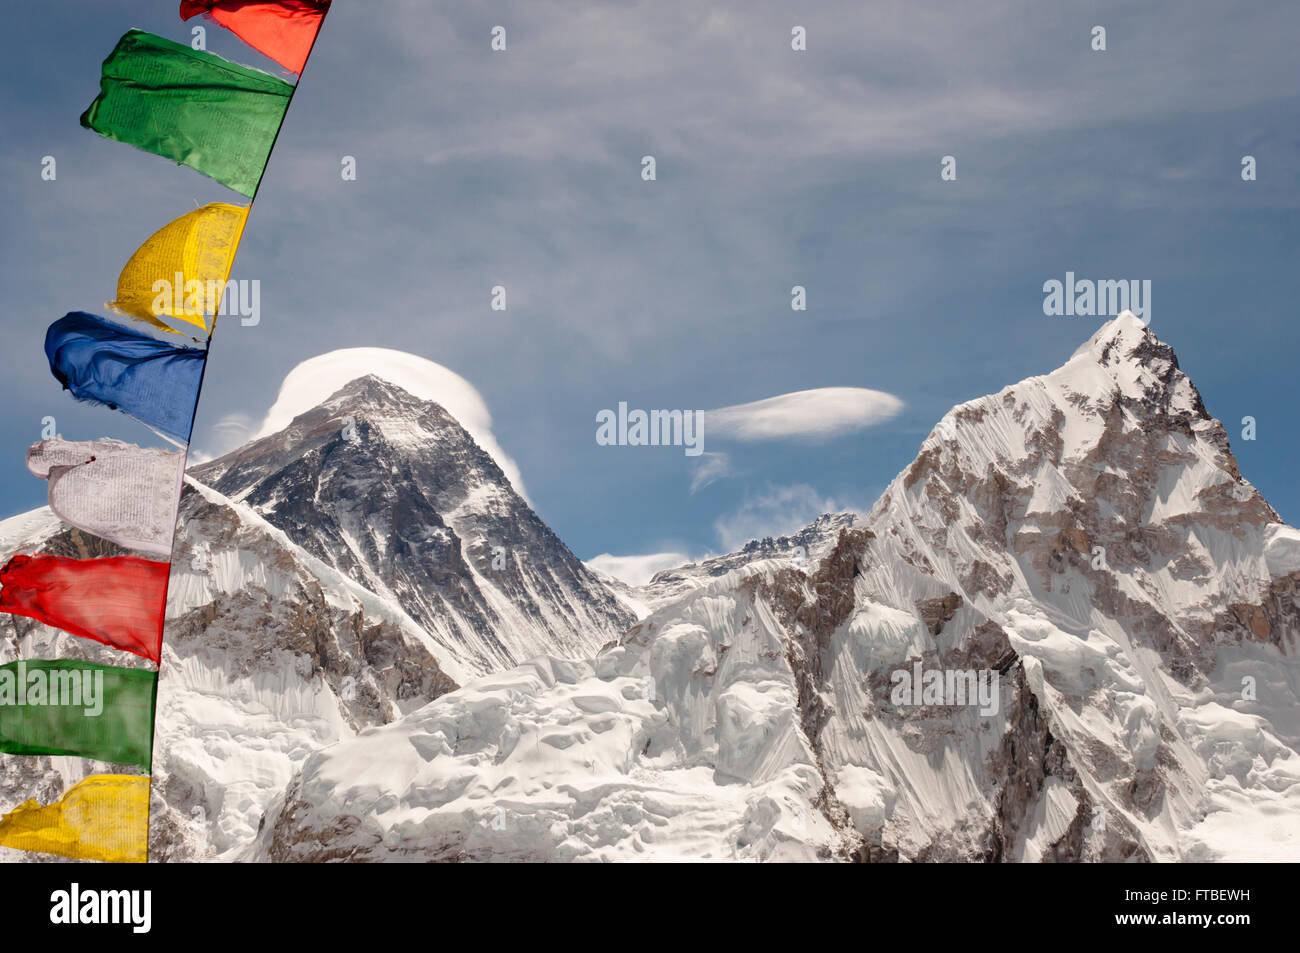 Mount Everest with Prayer Flags - Nepal - Stock Image